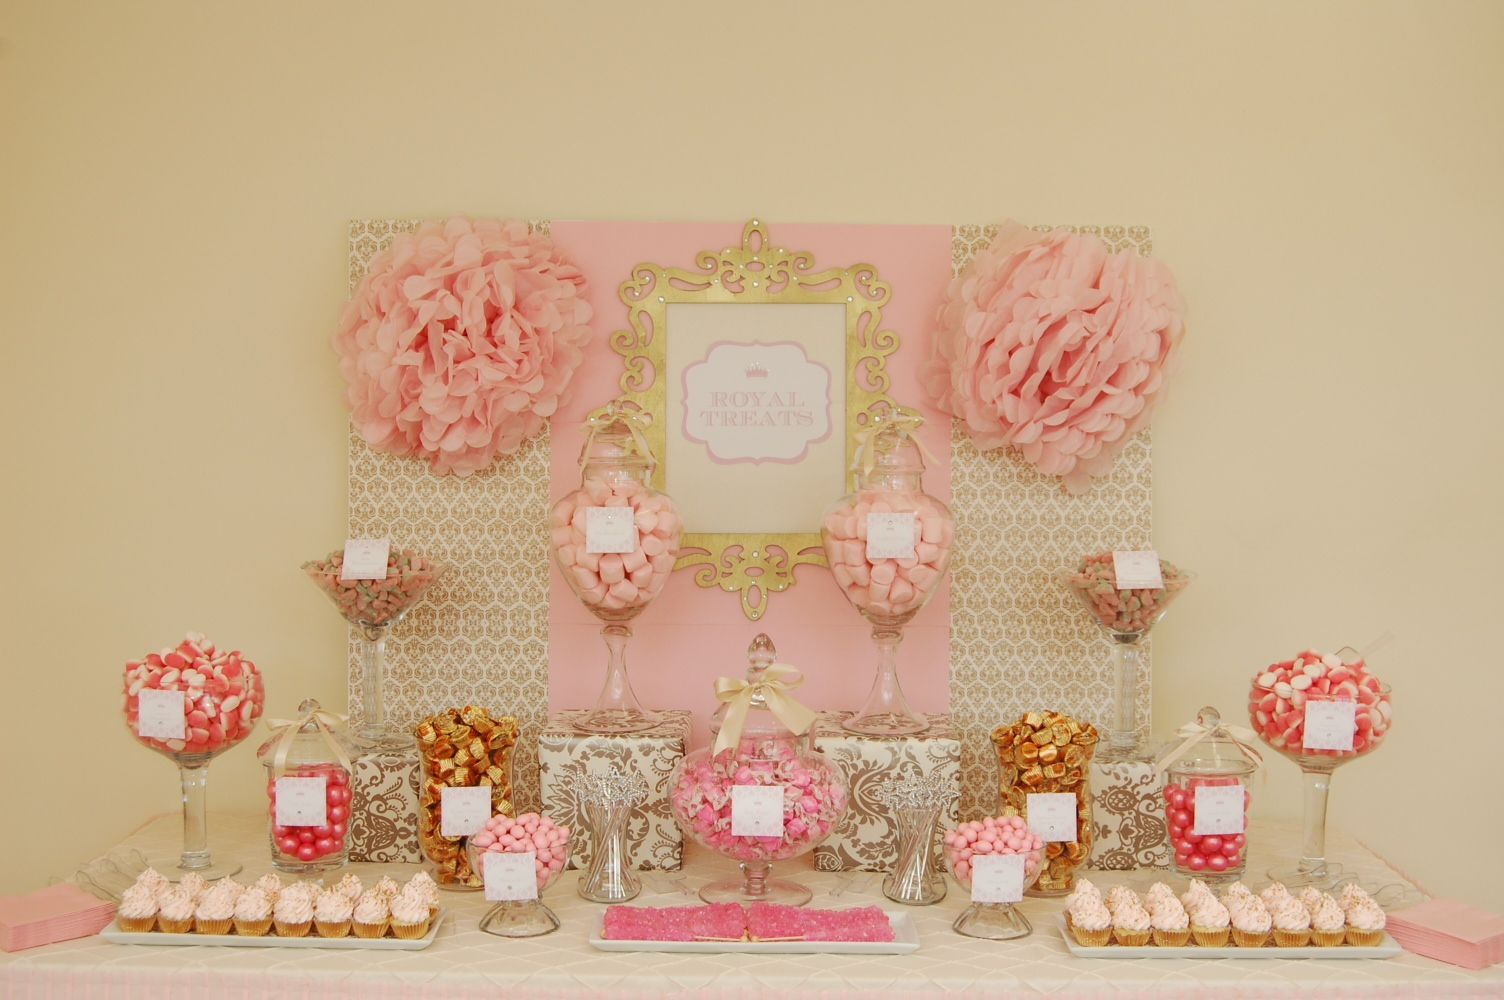 Princess Dessert Table Wedding Candy Candy Theme Quinceanera Pink